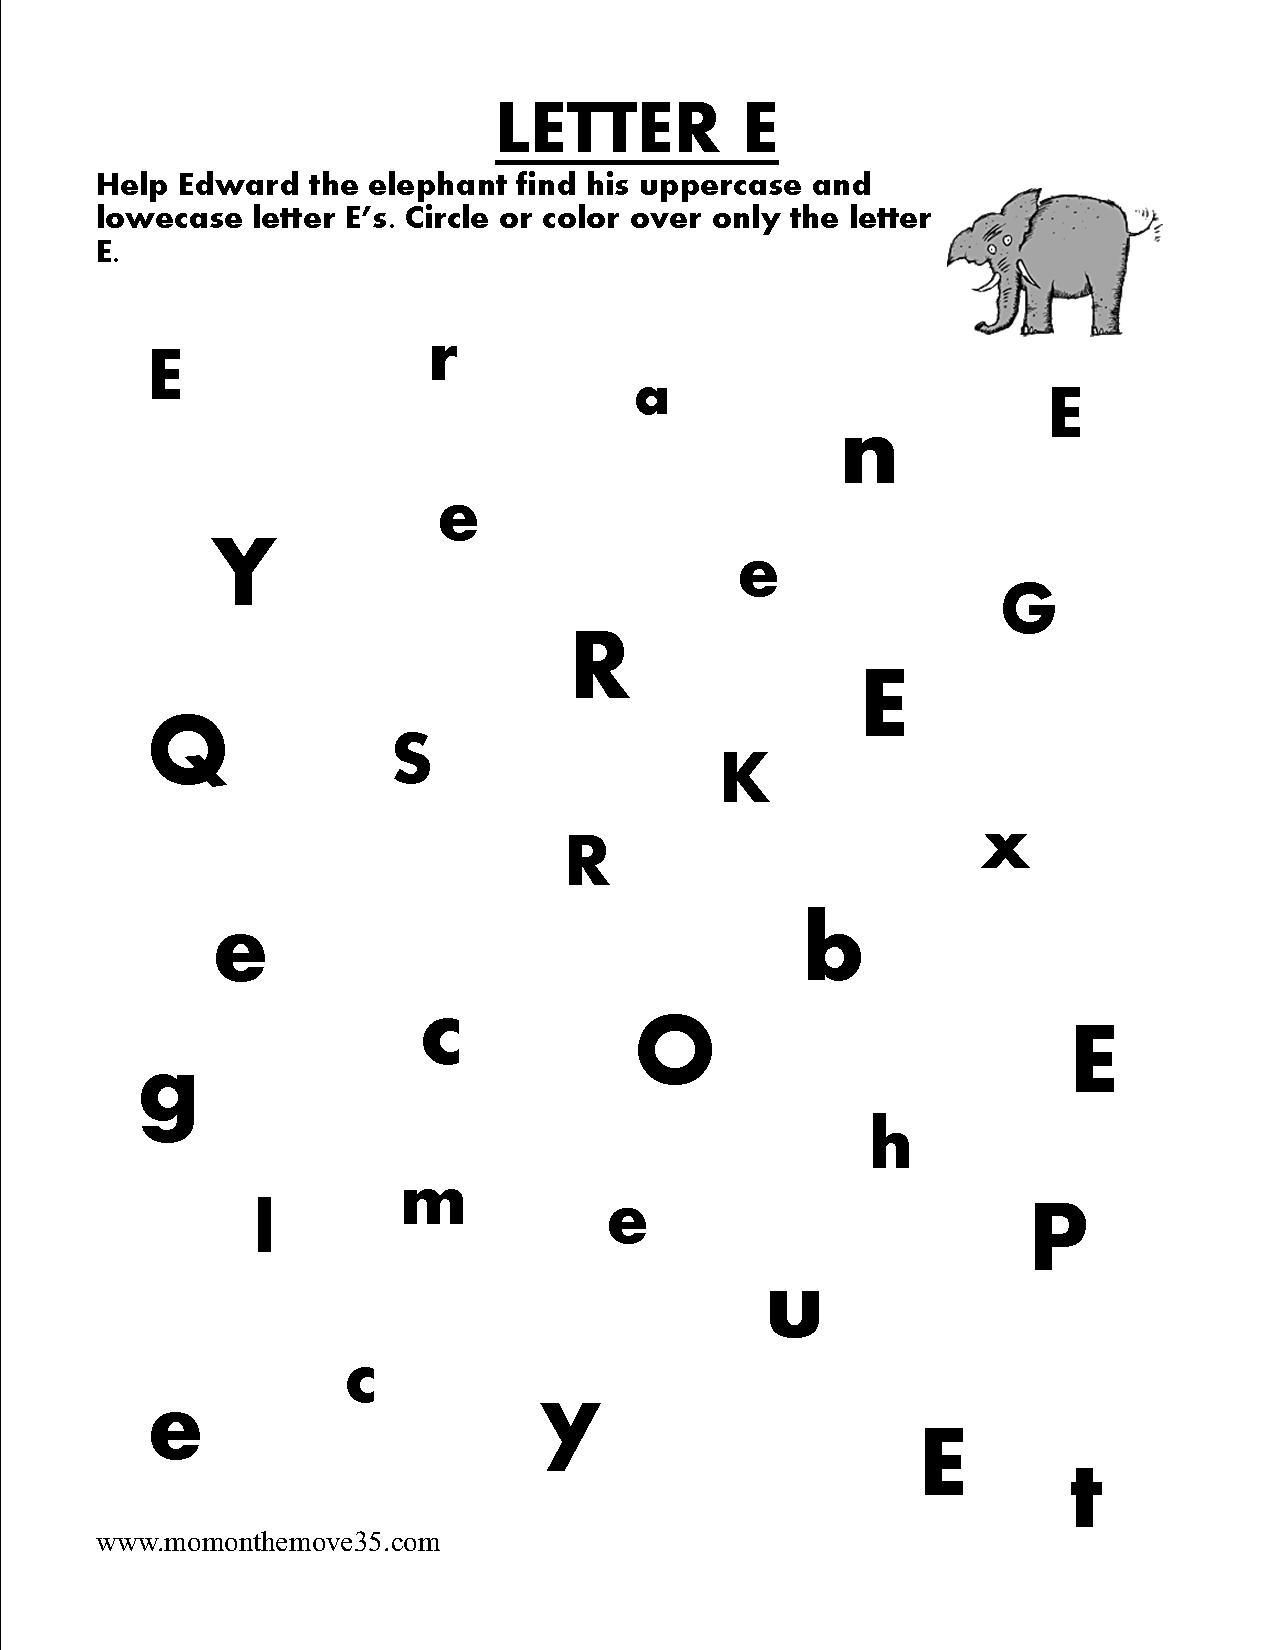 alphabet letter search creative teaching letter e worksheets letter c worksheets alphabet. Black Bedroom Furniture Sets. Home Design Ideas